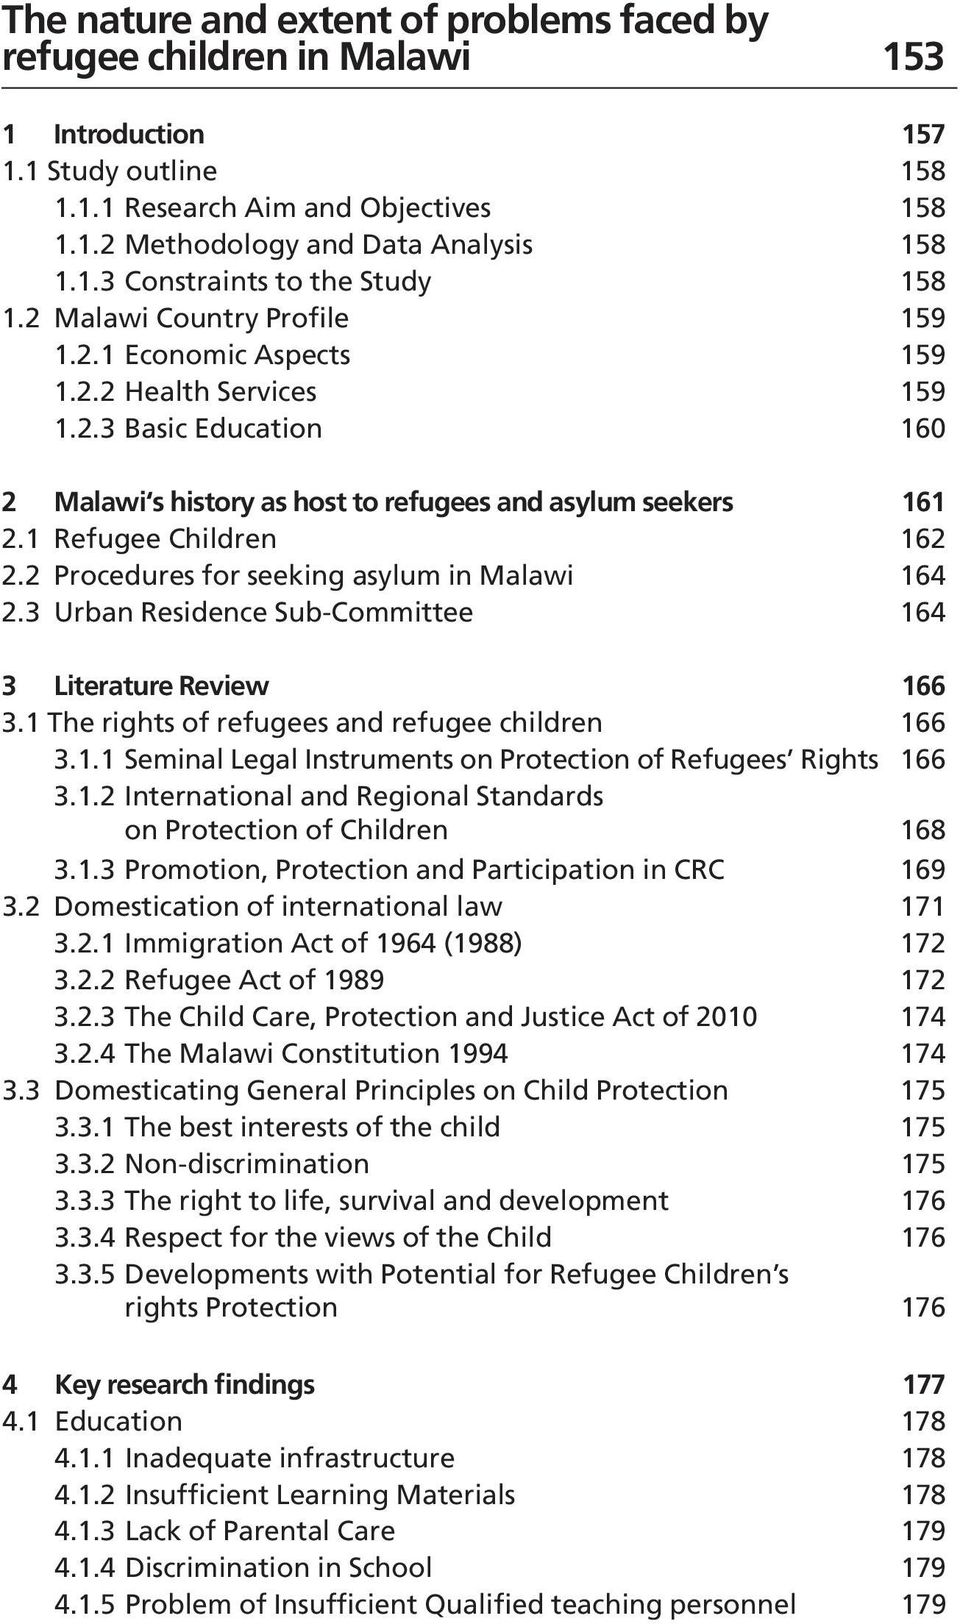 2 Procedures for seeking asylum in Malawi 164 2.3 Urban Residence Sub-Committee 164 3 Literature Review 166 3.1 The rights of refugees and refugee children 166 3.1.1 Seminal Legal Instruments on Protection of Refugees Rights 166 3.